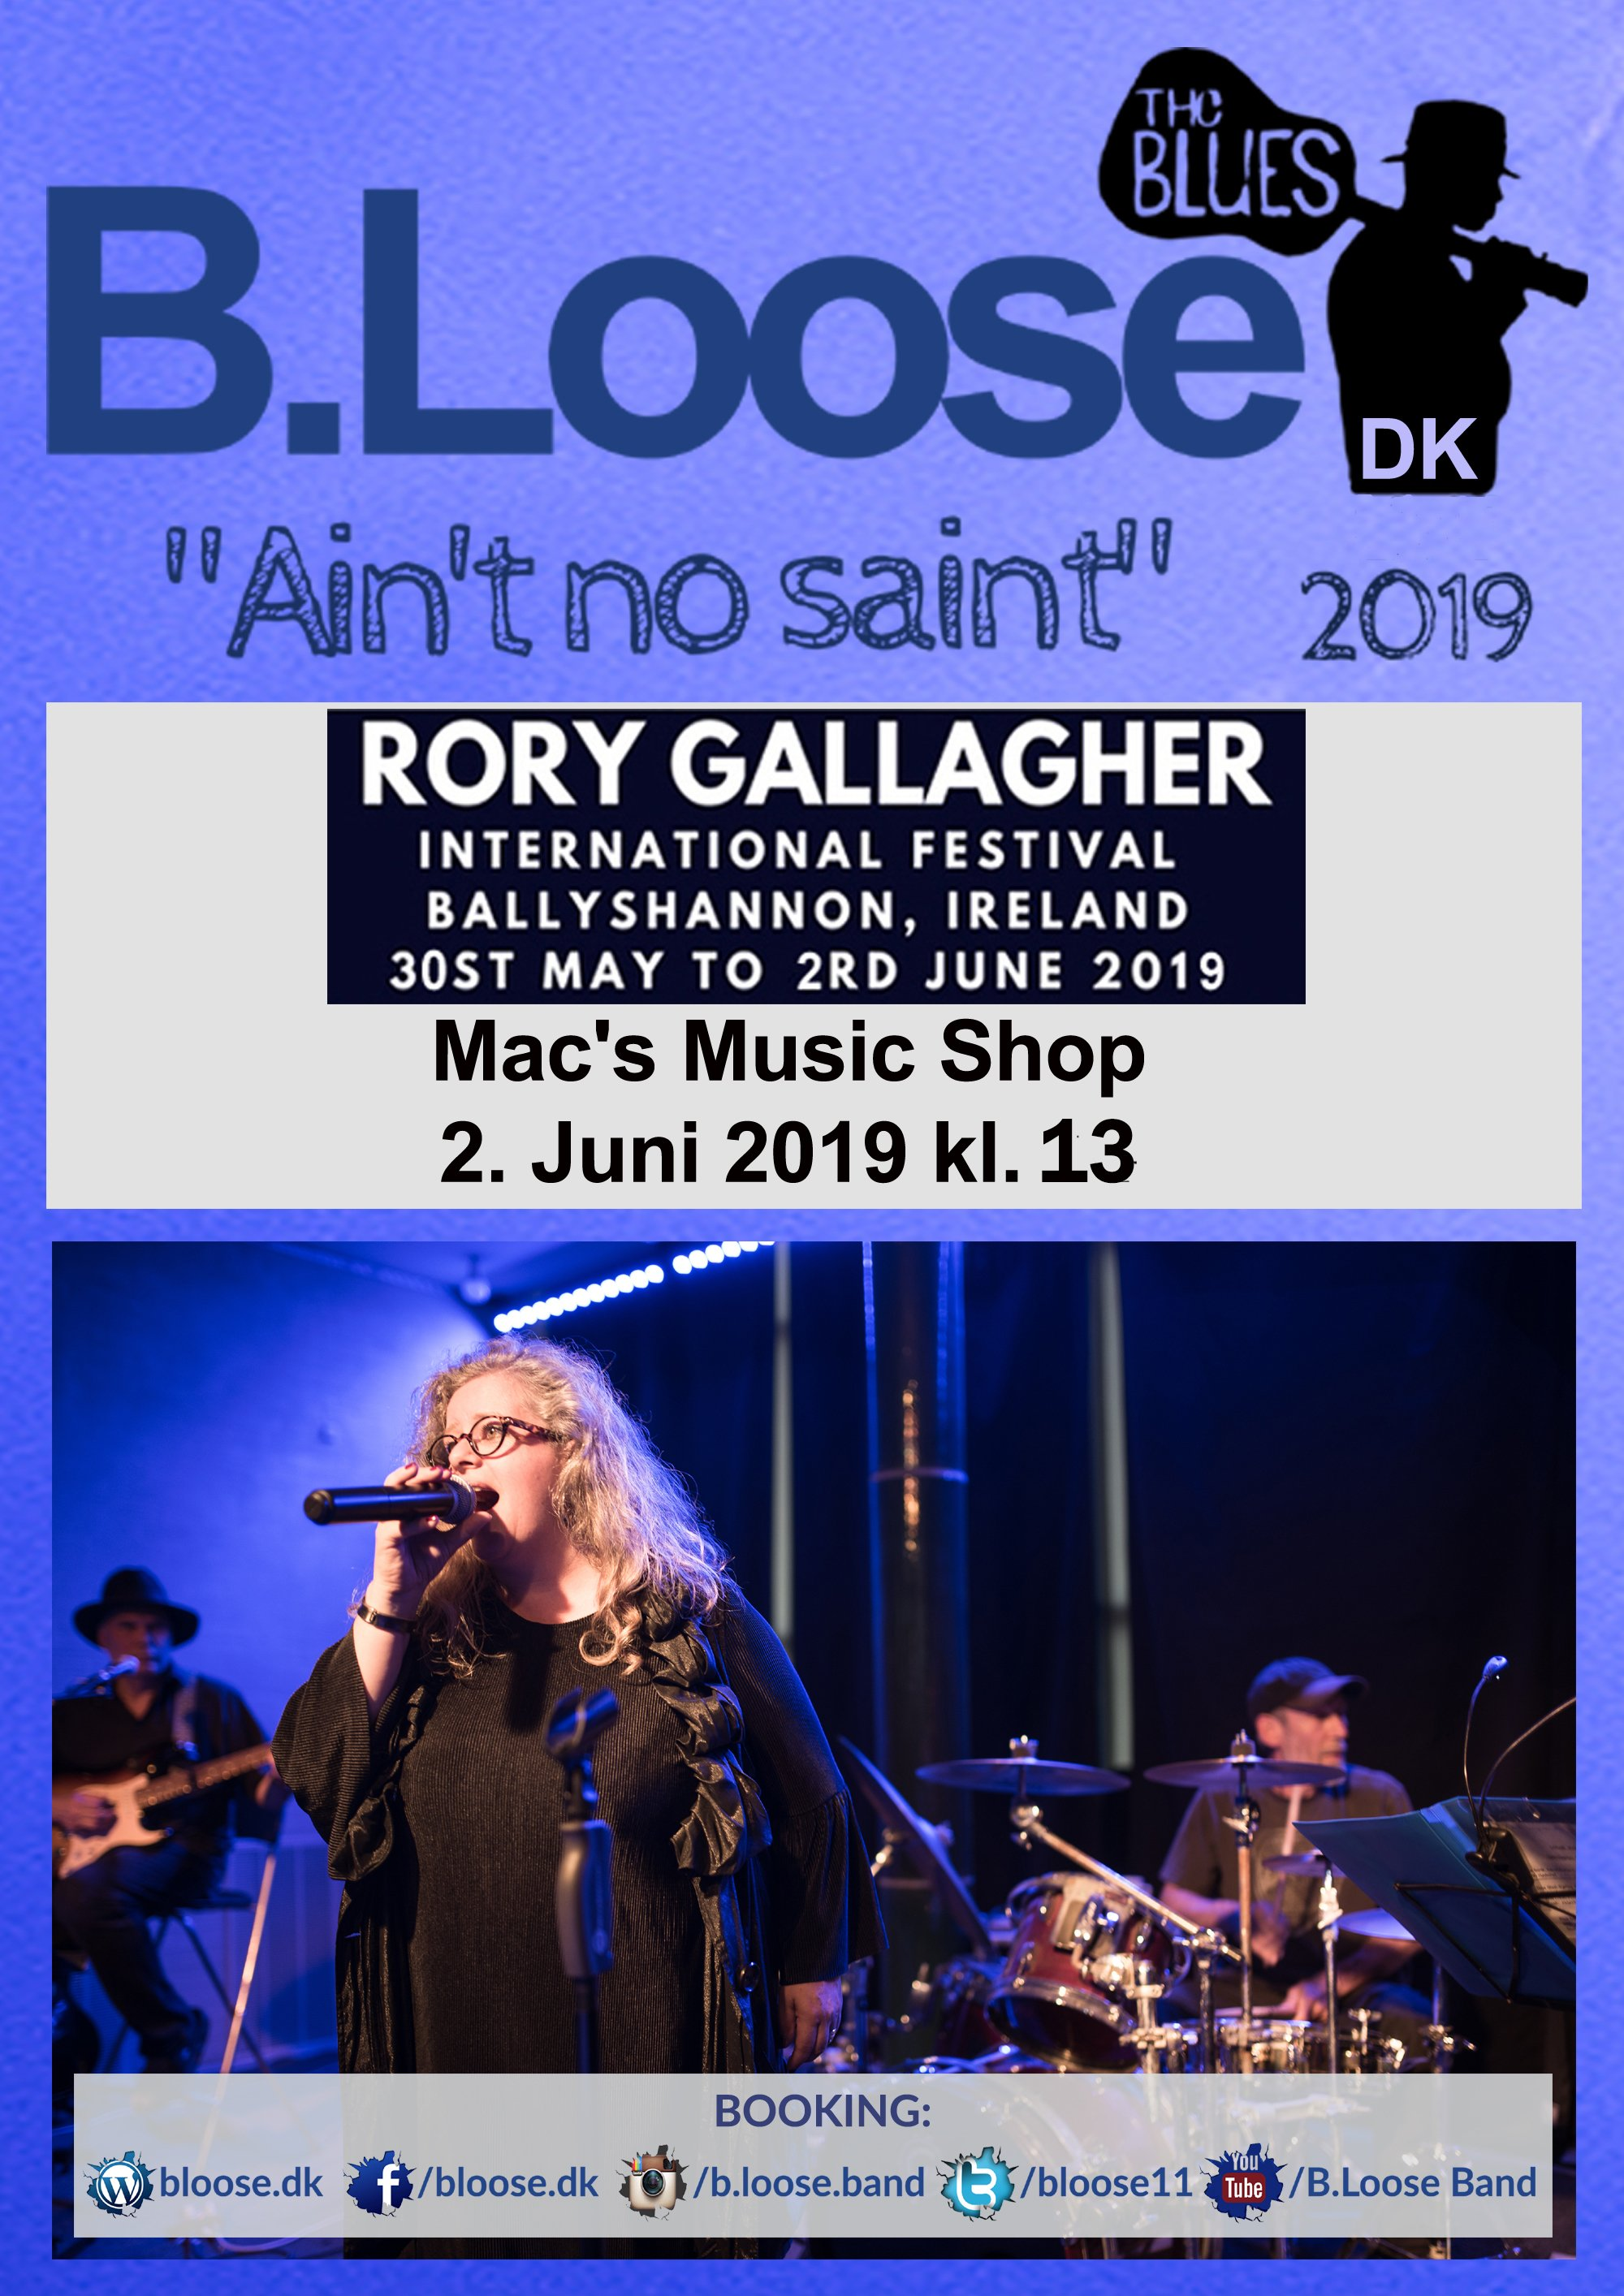 2019.6.2 digital plakat - Mac's Music Shop - Rory Gallagher Festival (